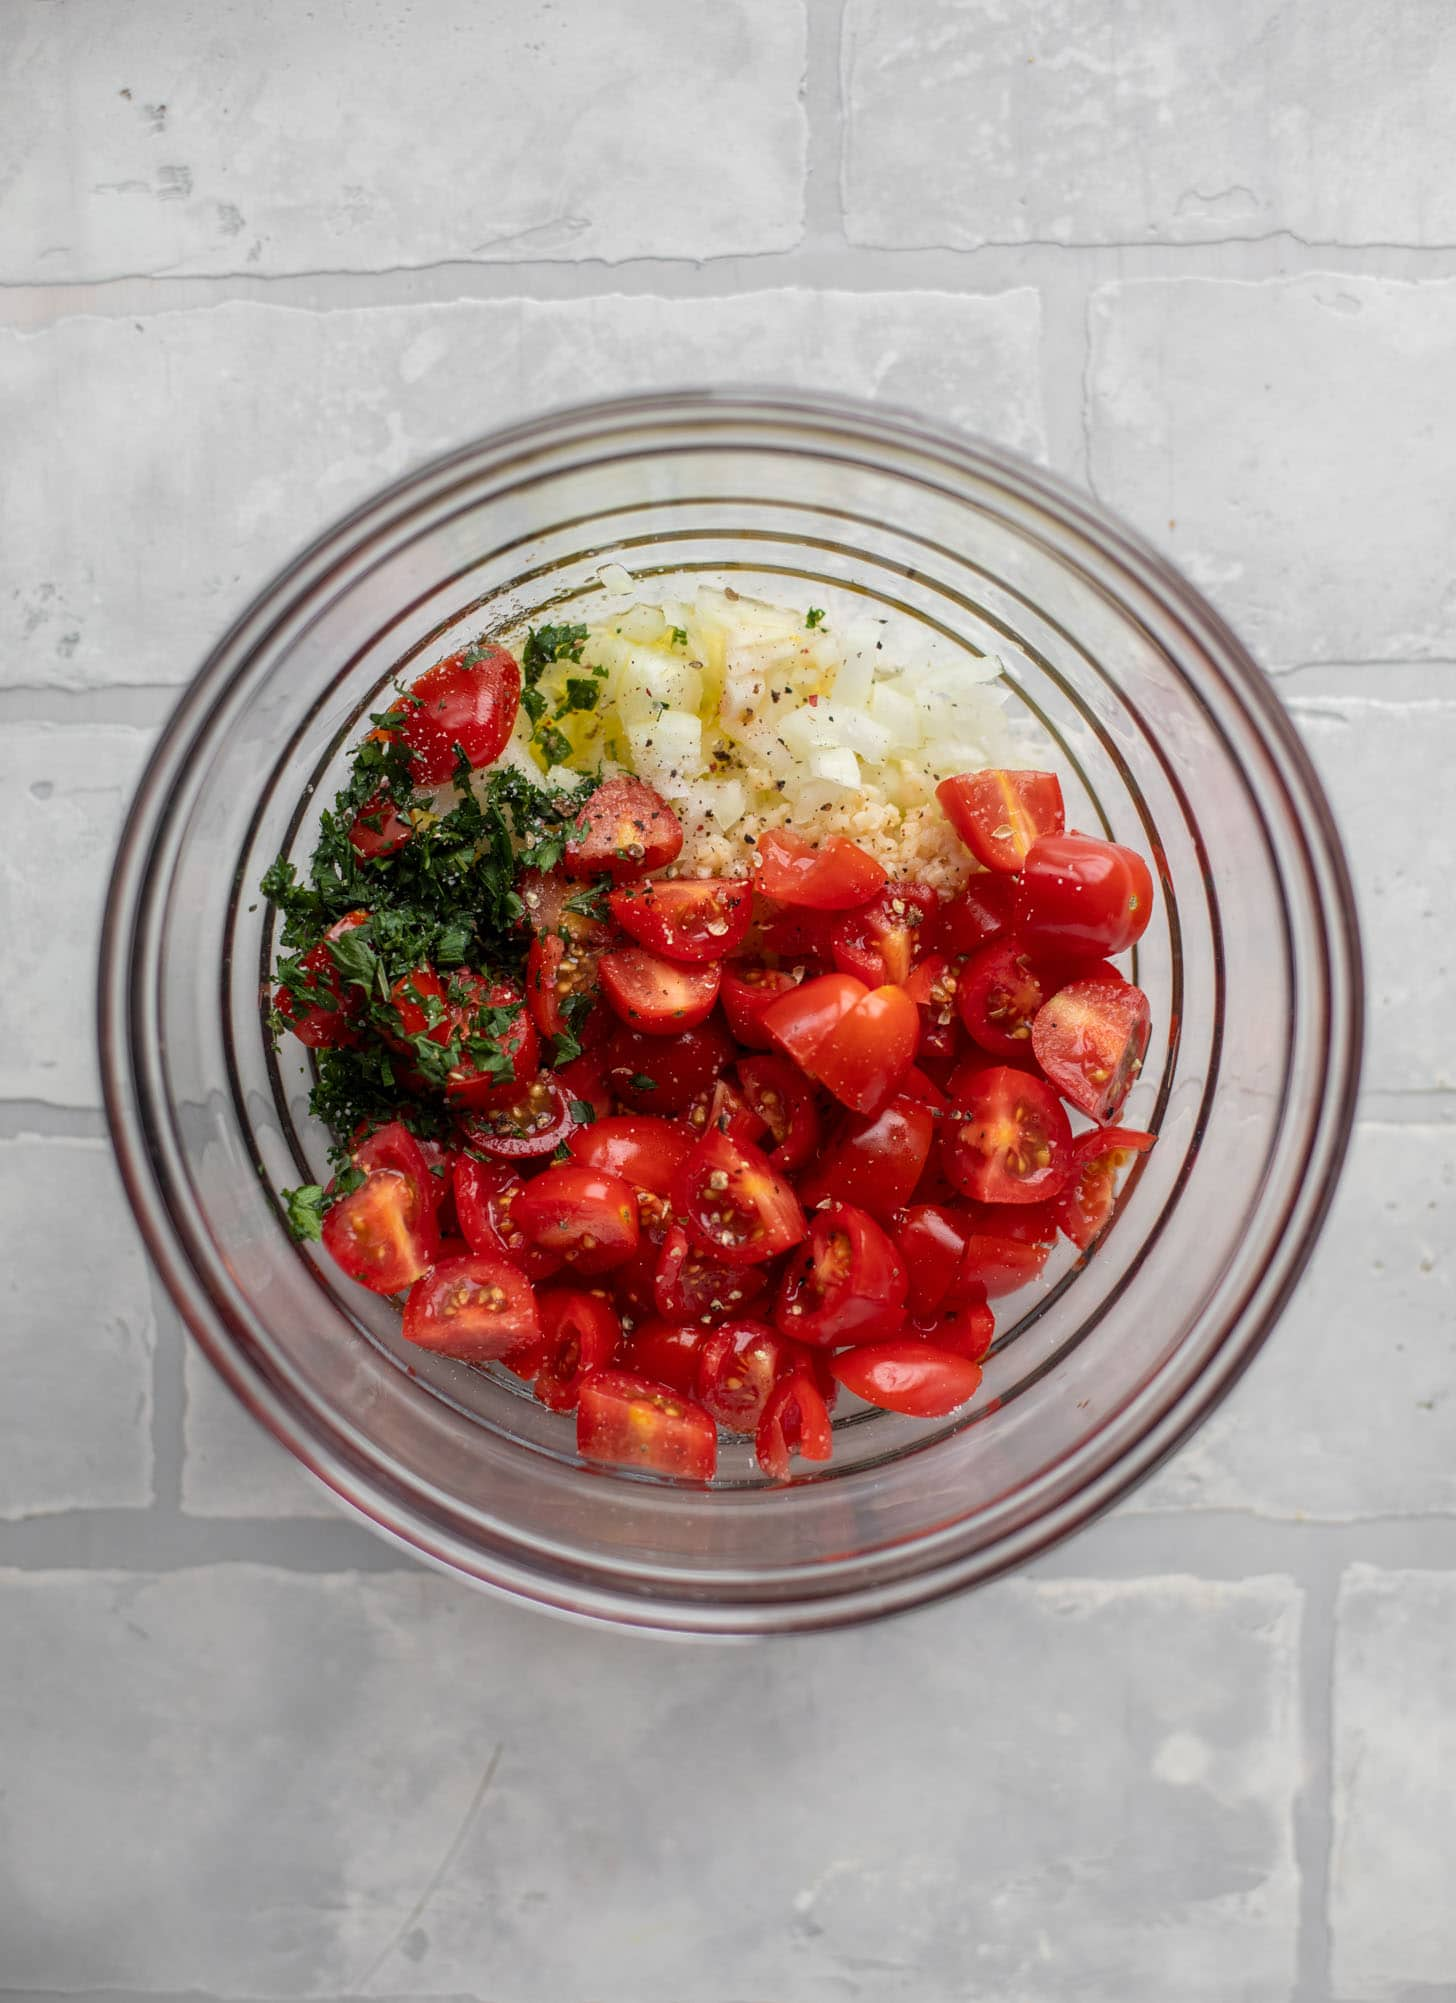 tomatoes, basil, onion, garlic in a bowl